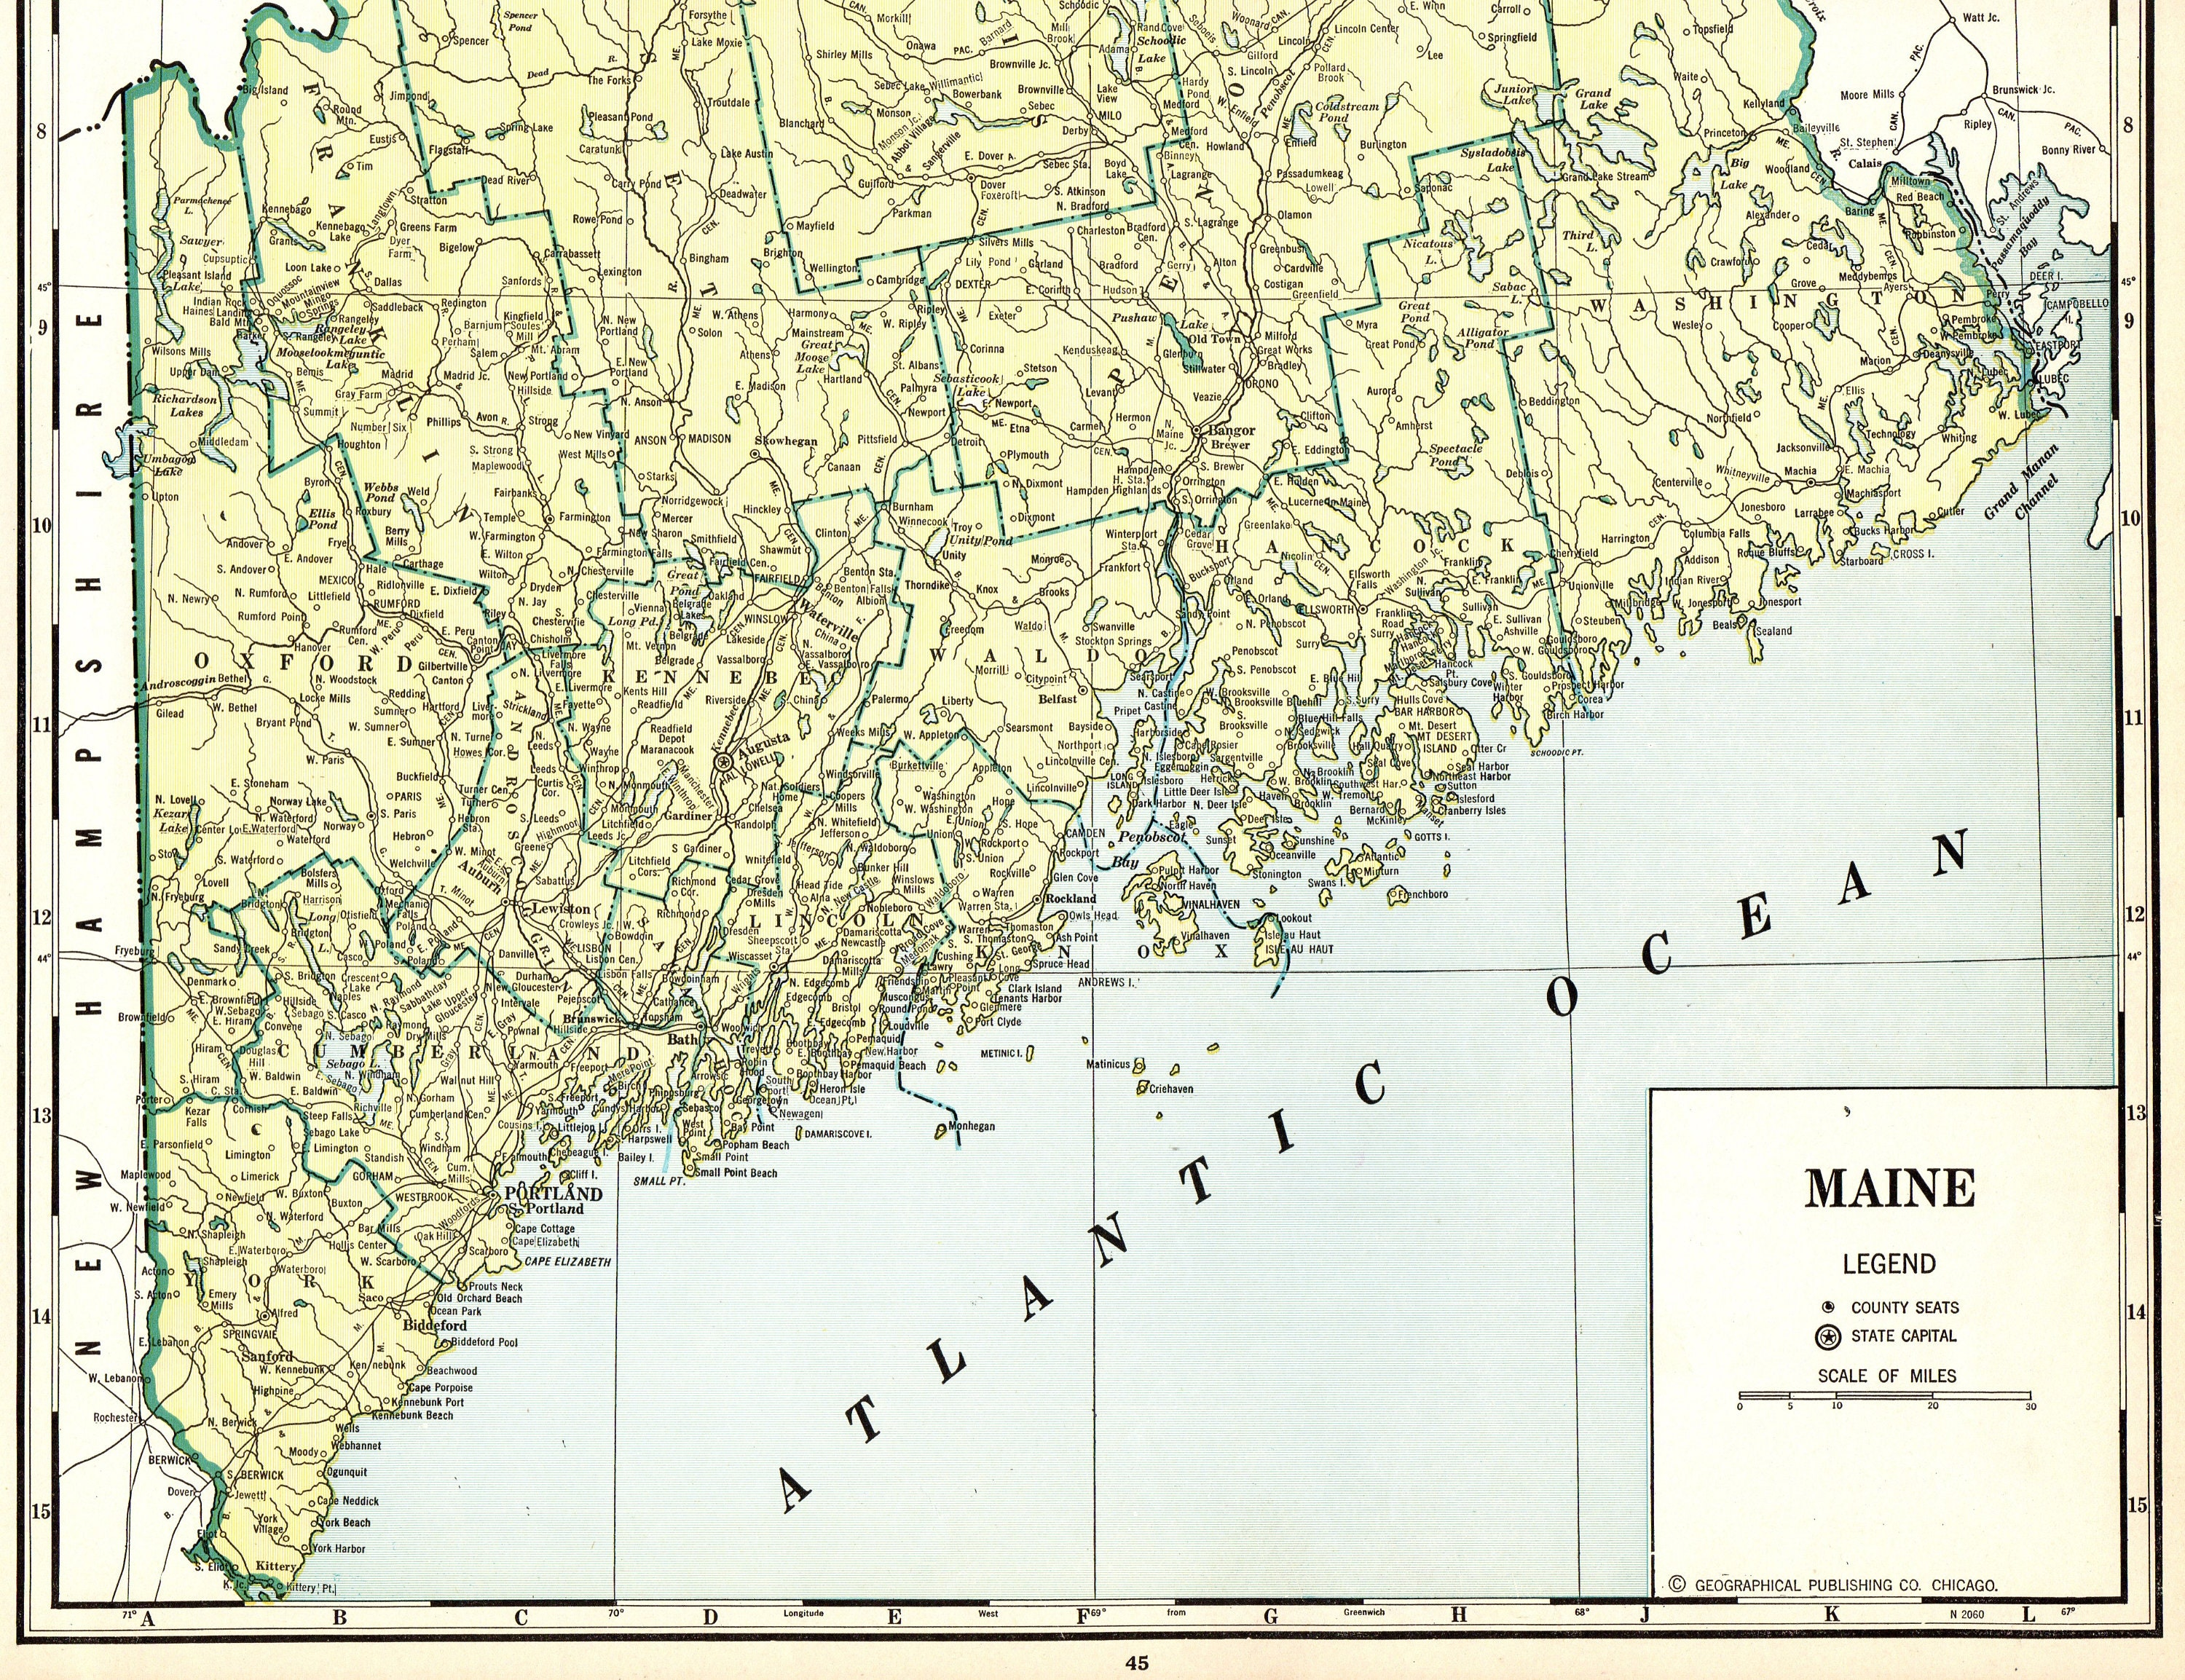 Hiram Maine Map.1937 Antique Maine State Map Vintage Map Of Maine Rare Poster Etsy